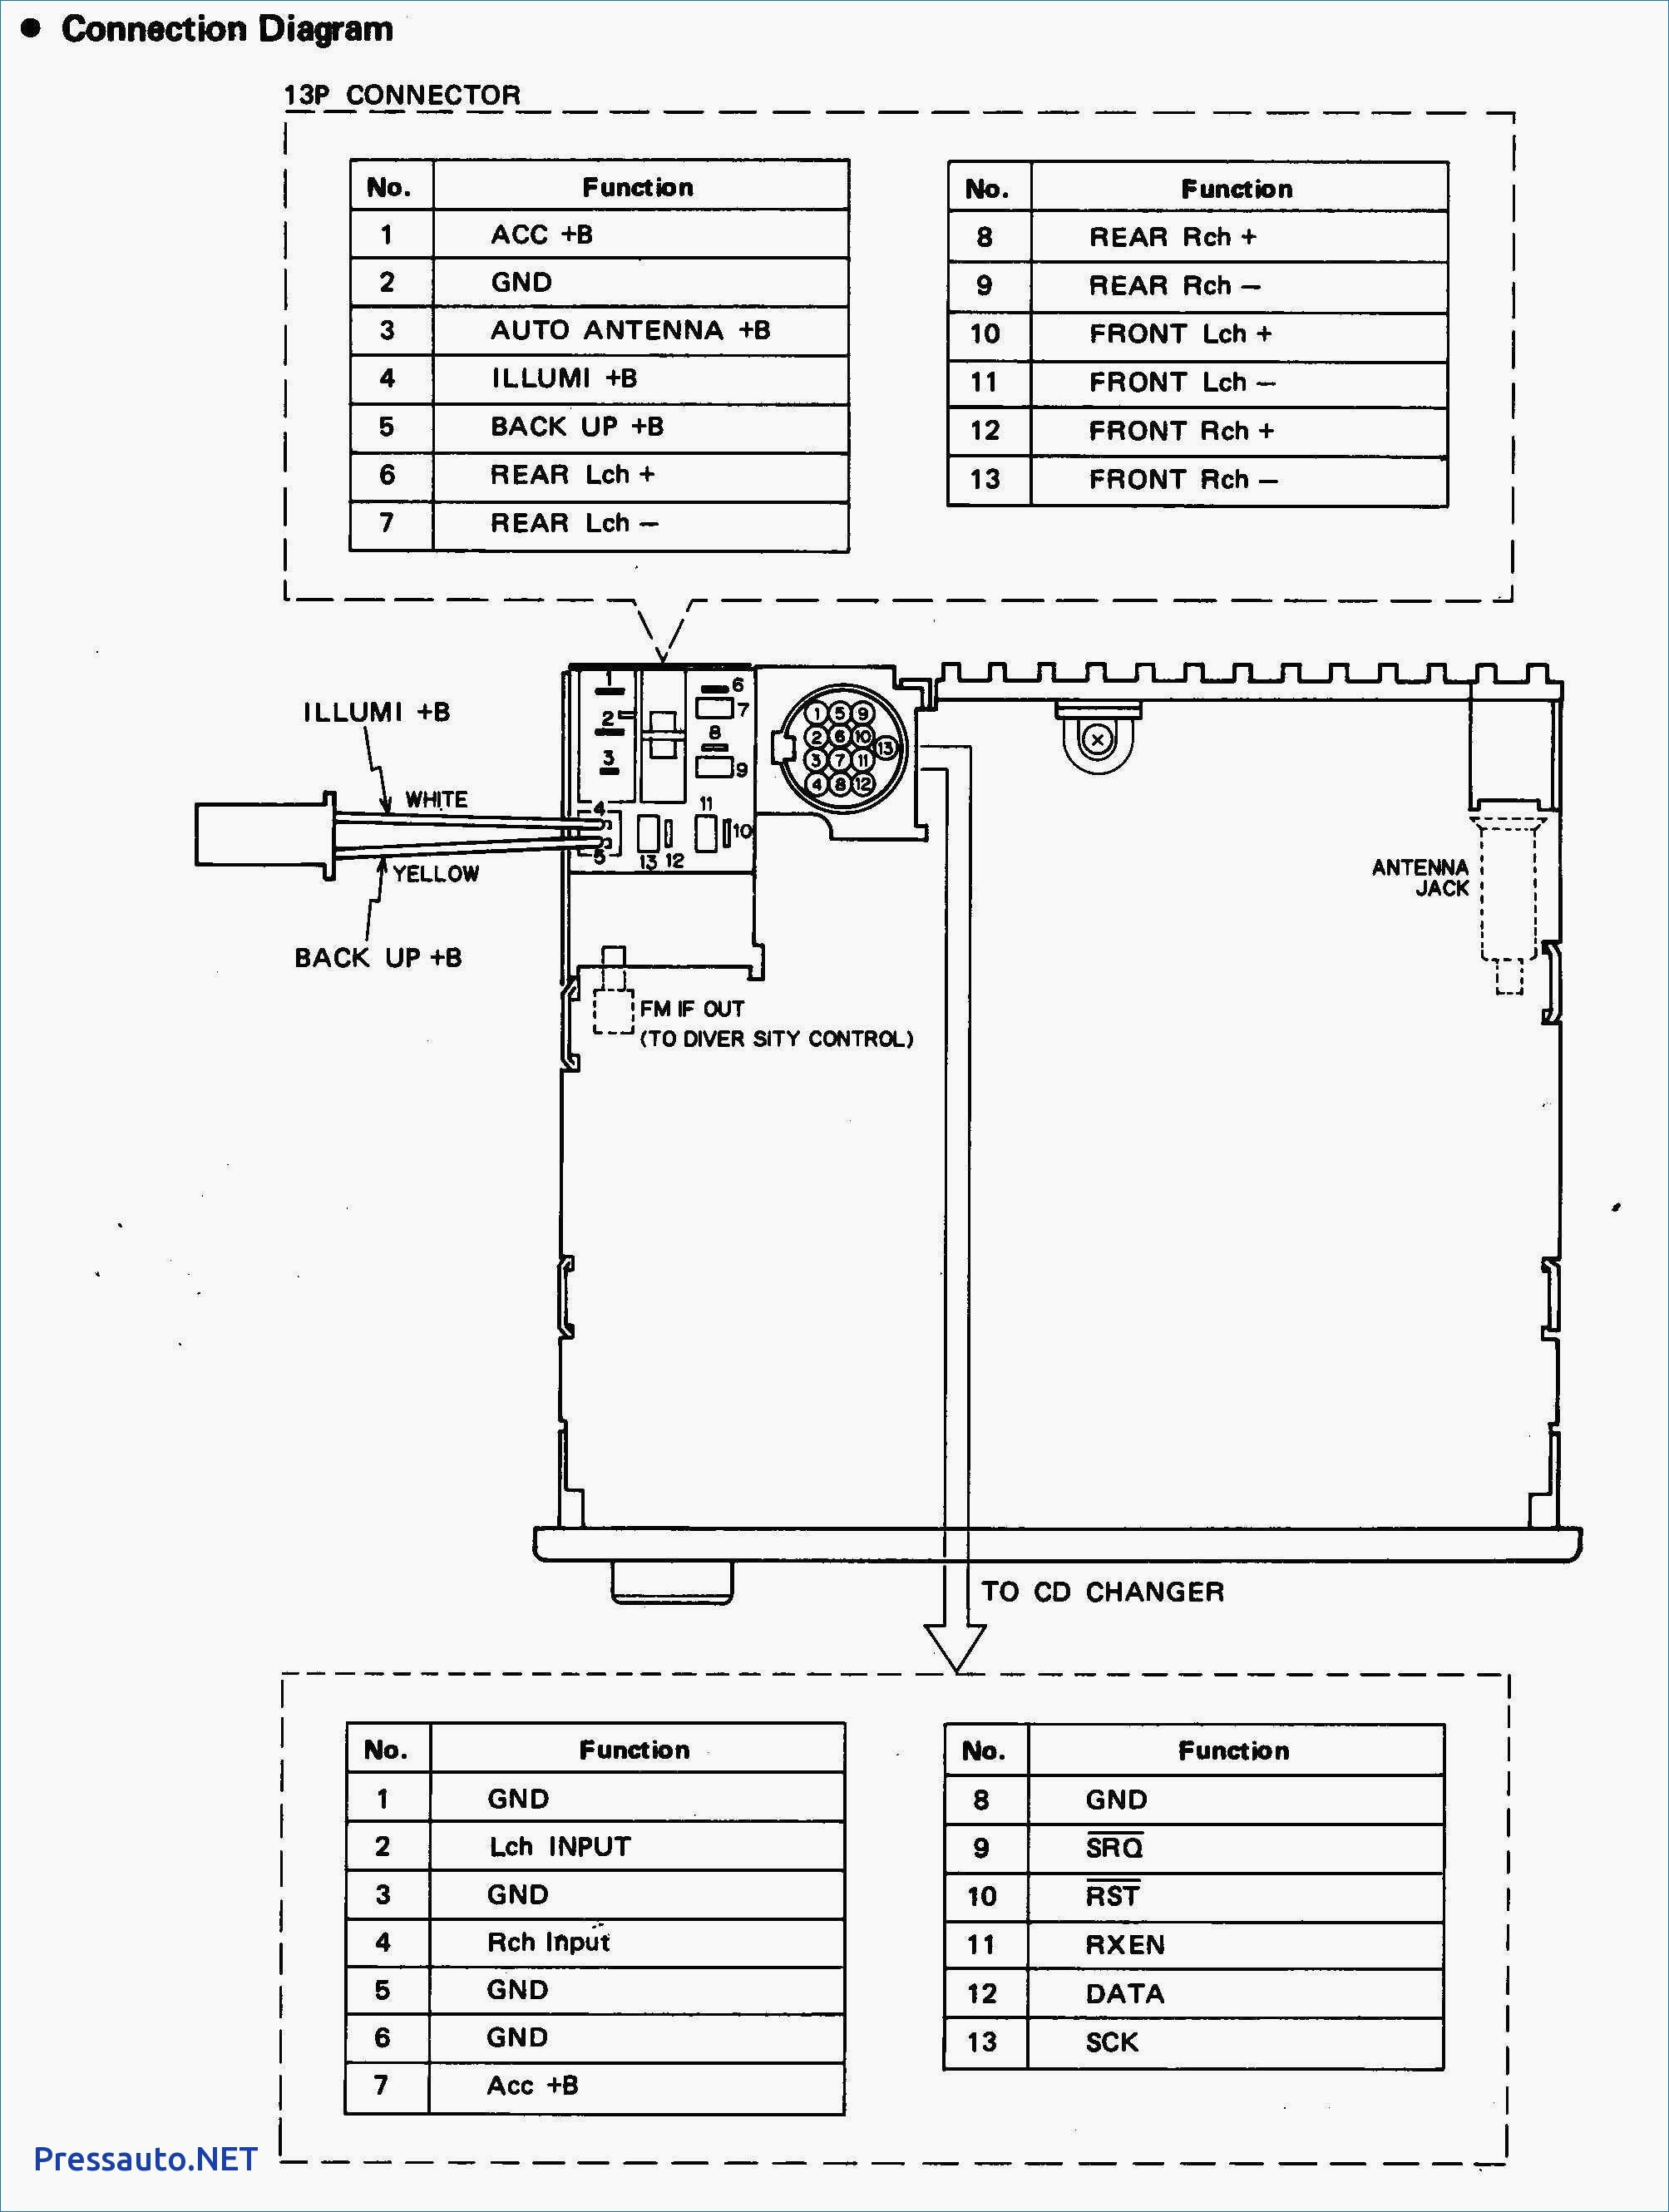 clarion car stereo wiring diagram Collection-Clarion Wiring Diagram For Car Stereo Valid Modern Clarion Car Stereo Wiring Diagram Bmw X5 Sketch Electrical 5-c